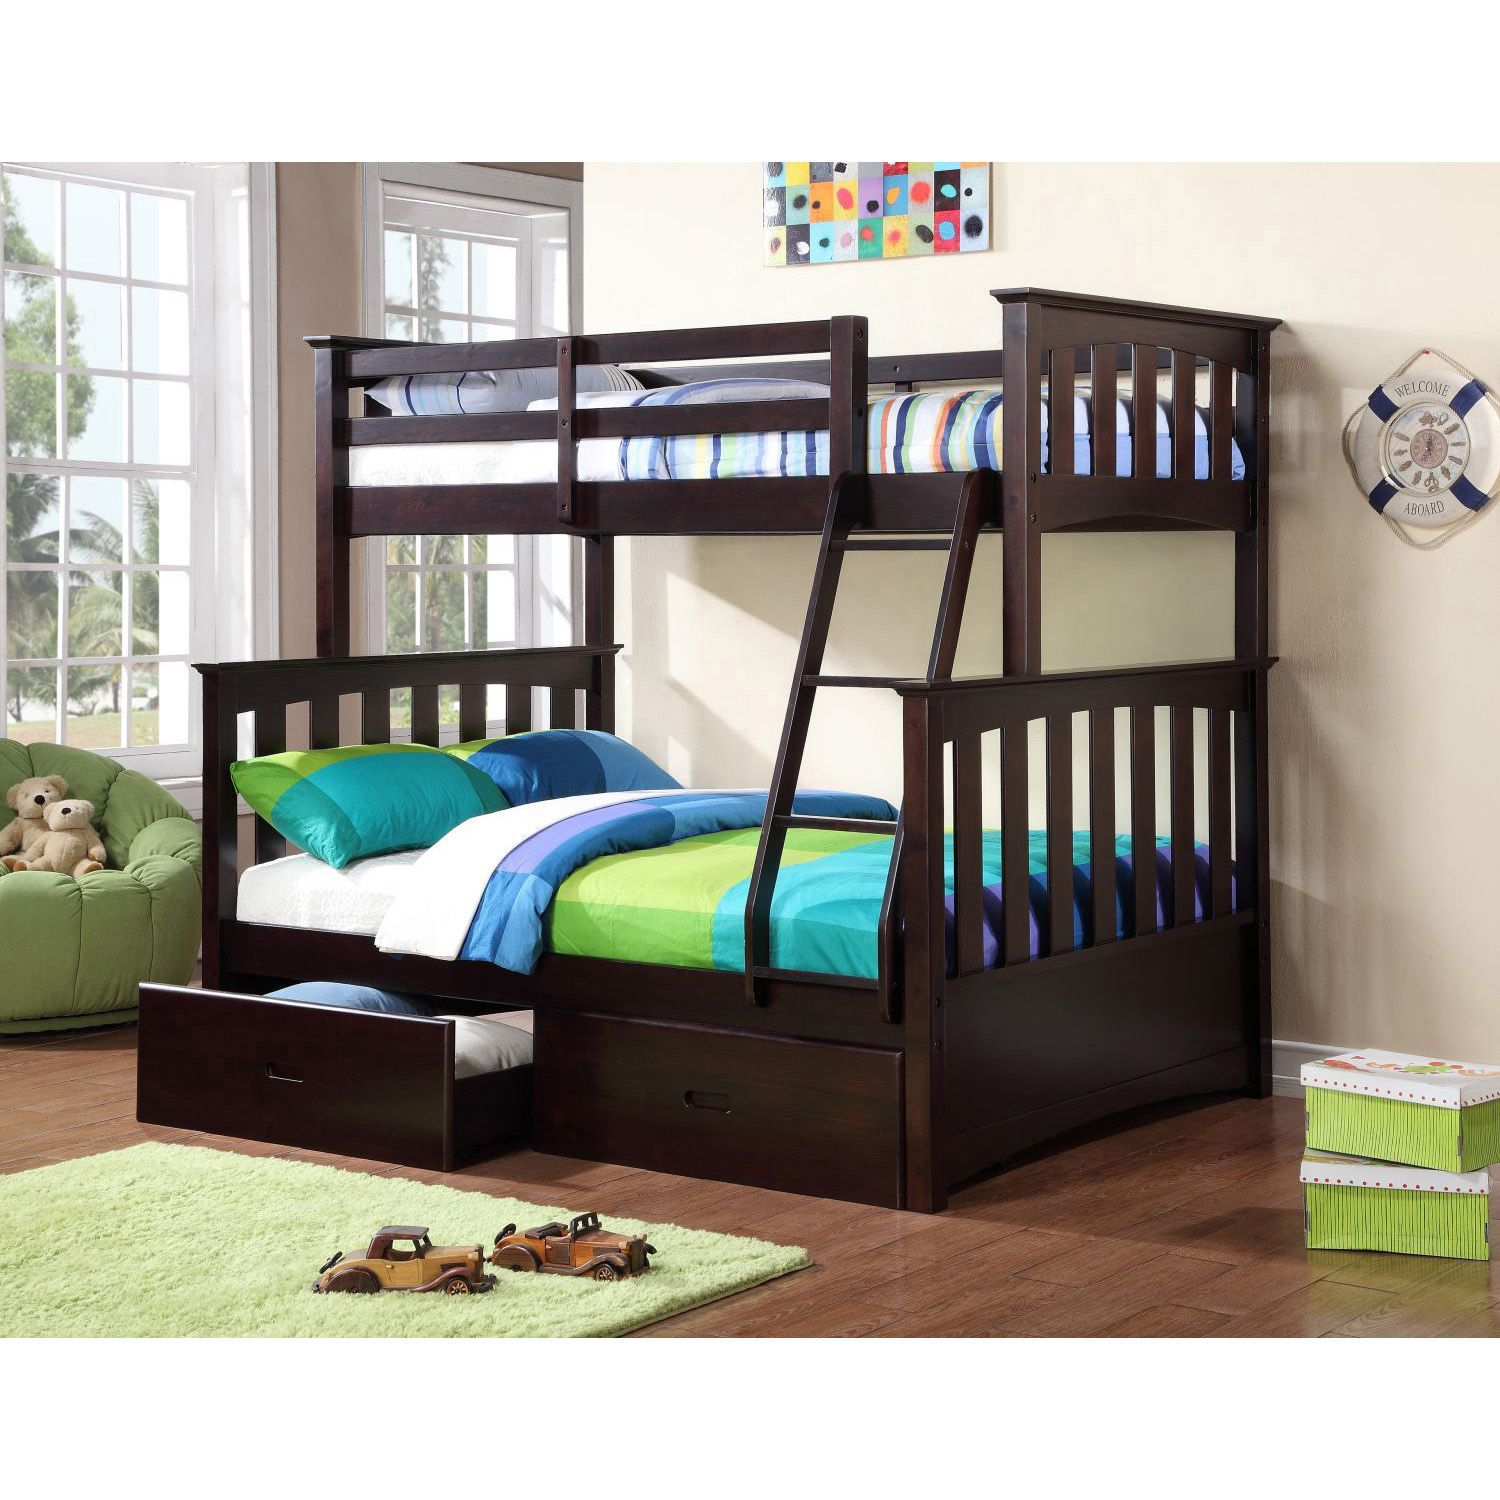 Twin over full loft bed with stairs  Newbury TwinOverFull Bunk Bed with Under the Bed Storage Drawers